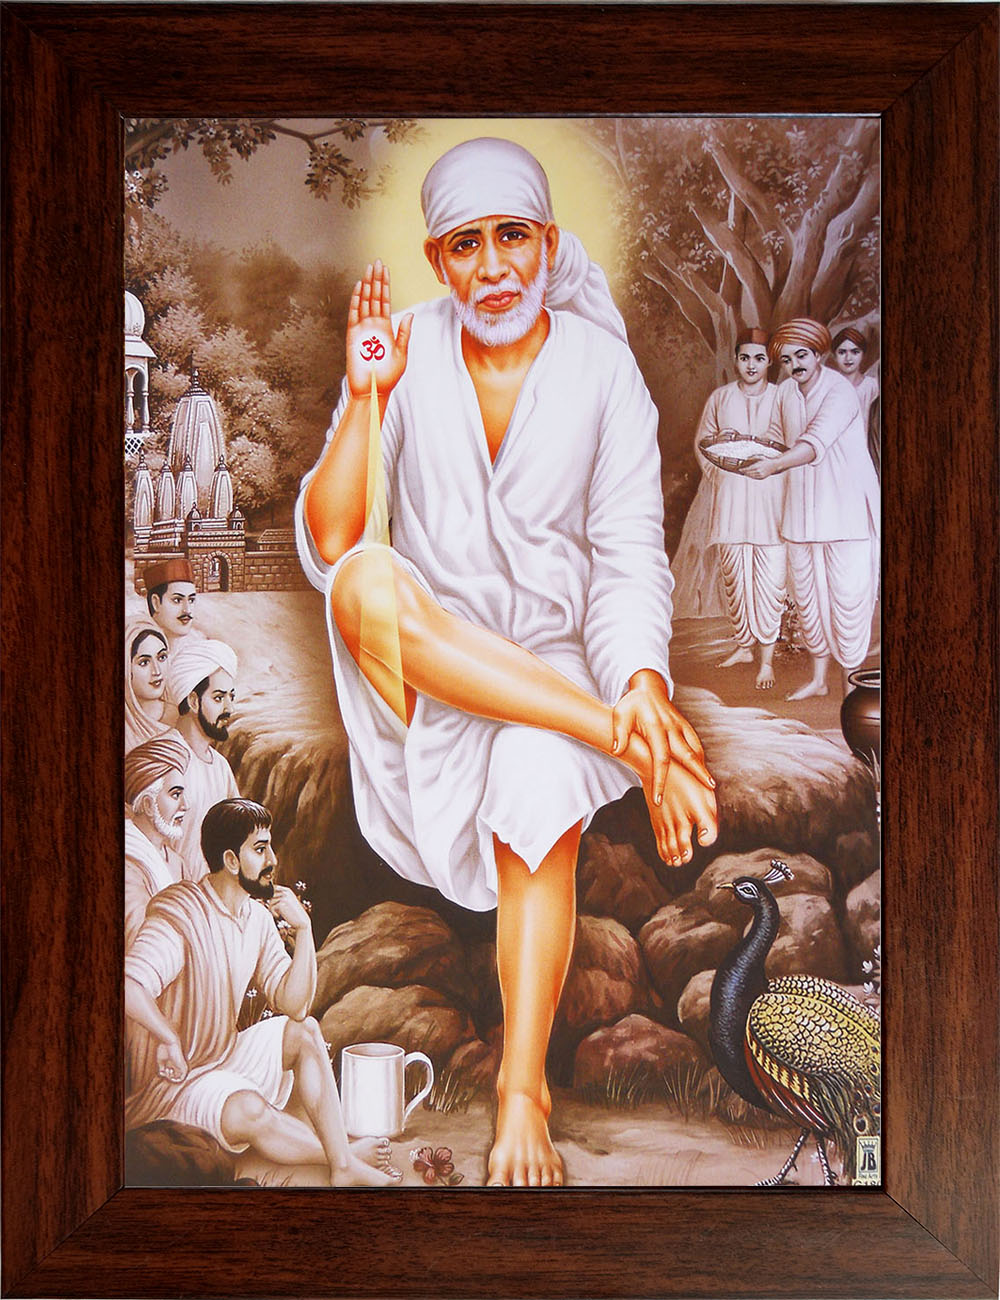 Top 12 Sai Baba Images In Hd Quality - Gorgeous Tiny